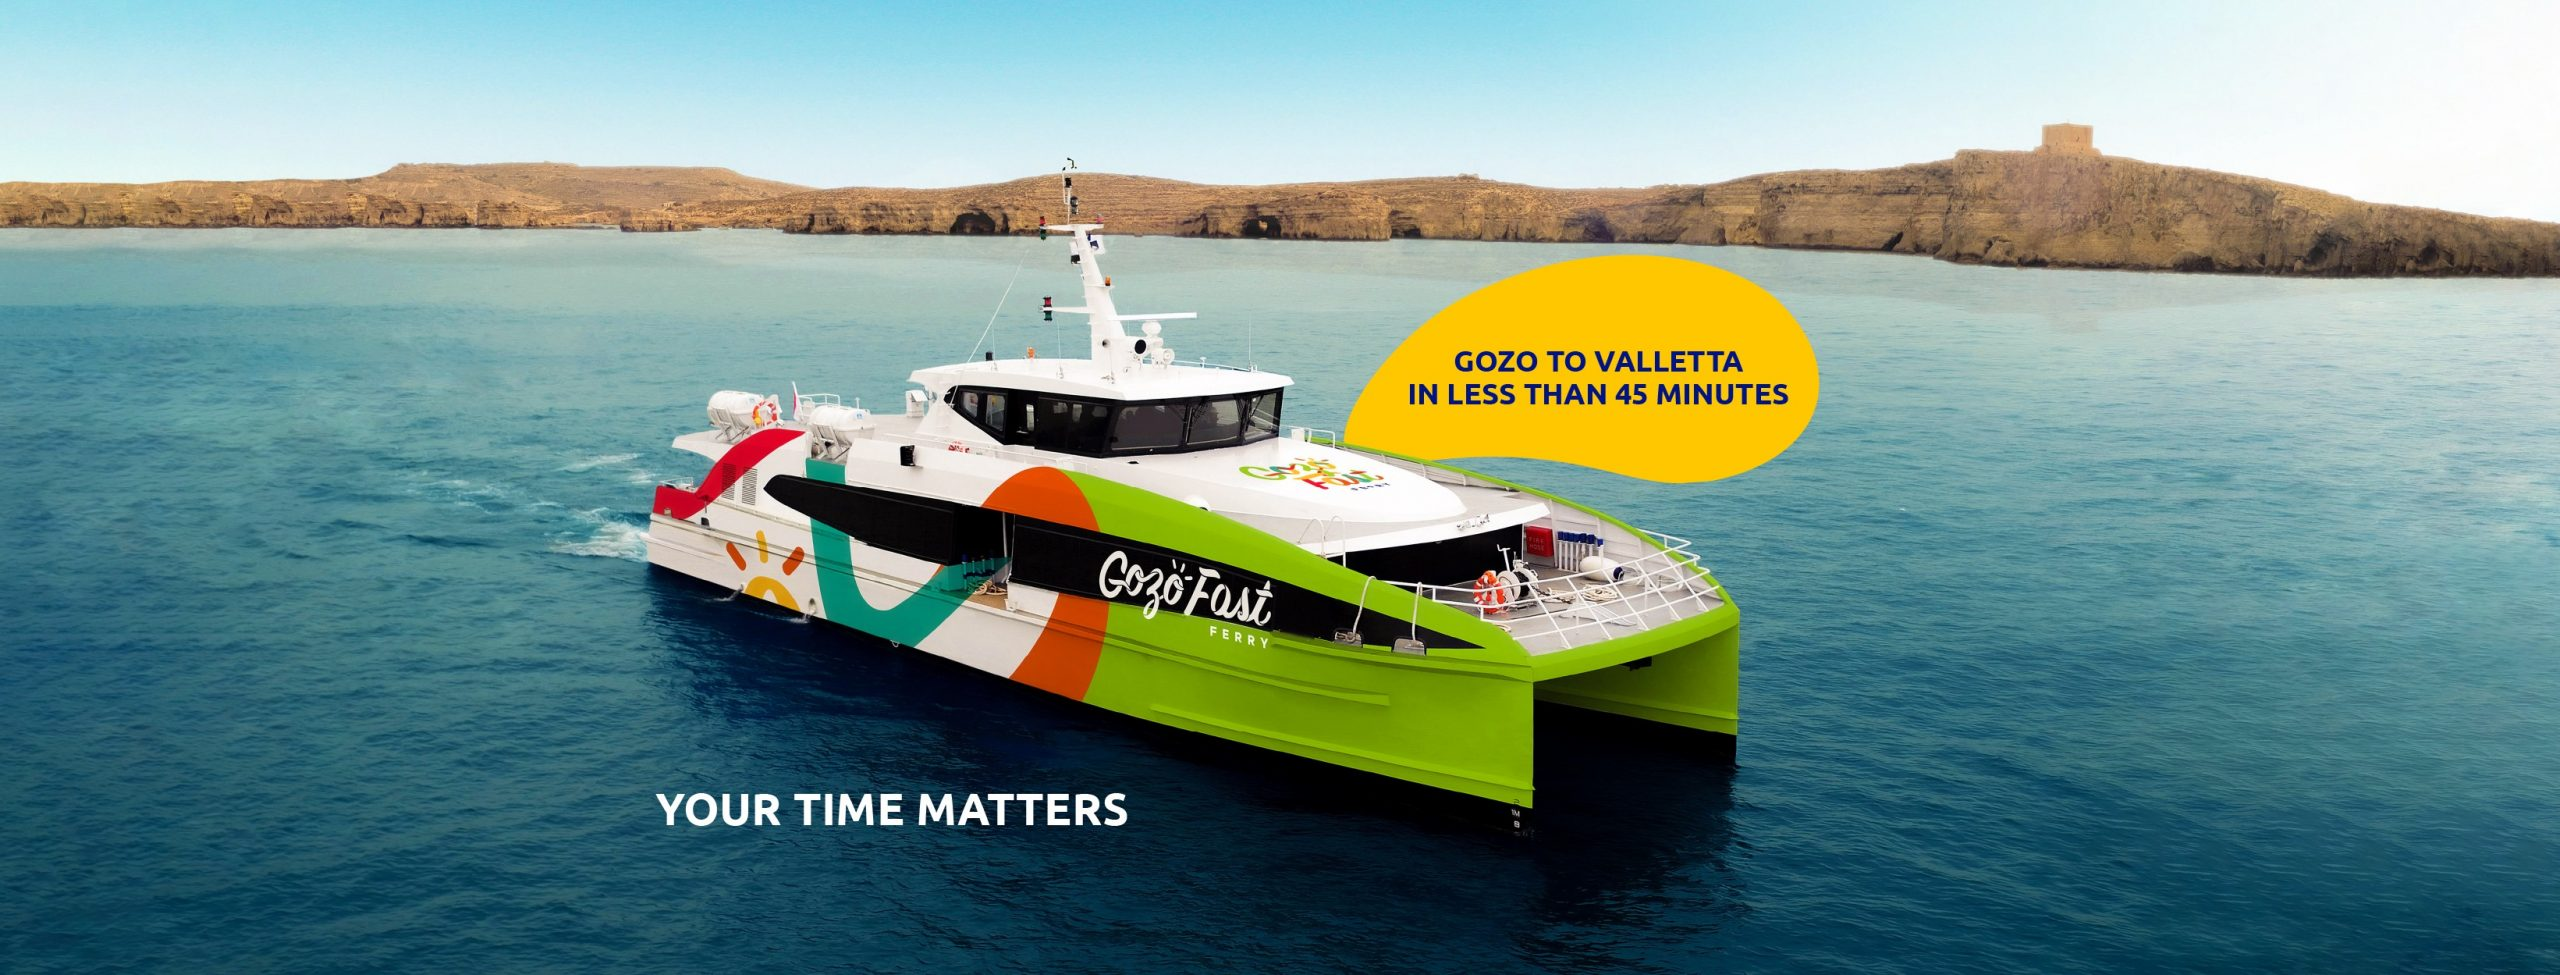 New 8 Till Late Convenience Kiosks on board the Gozo Fast Ferry